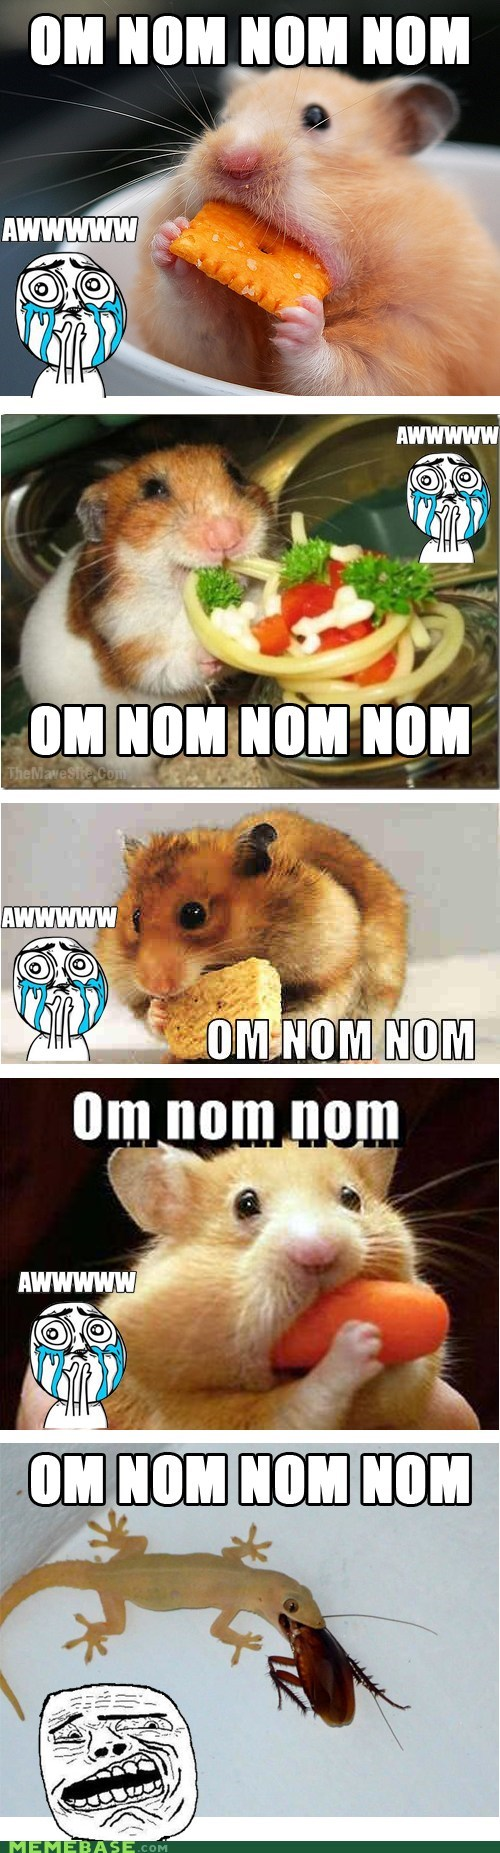 aw,bugs,cheese,hamsters,lizard,Memes,mice,om nom nom,sweet,terror